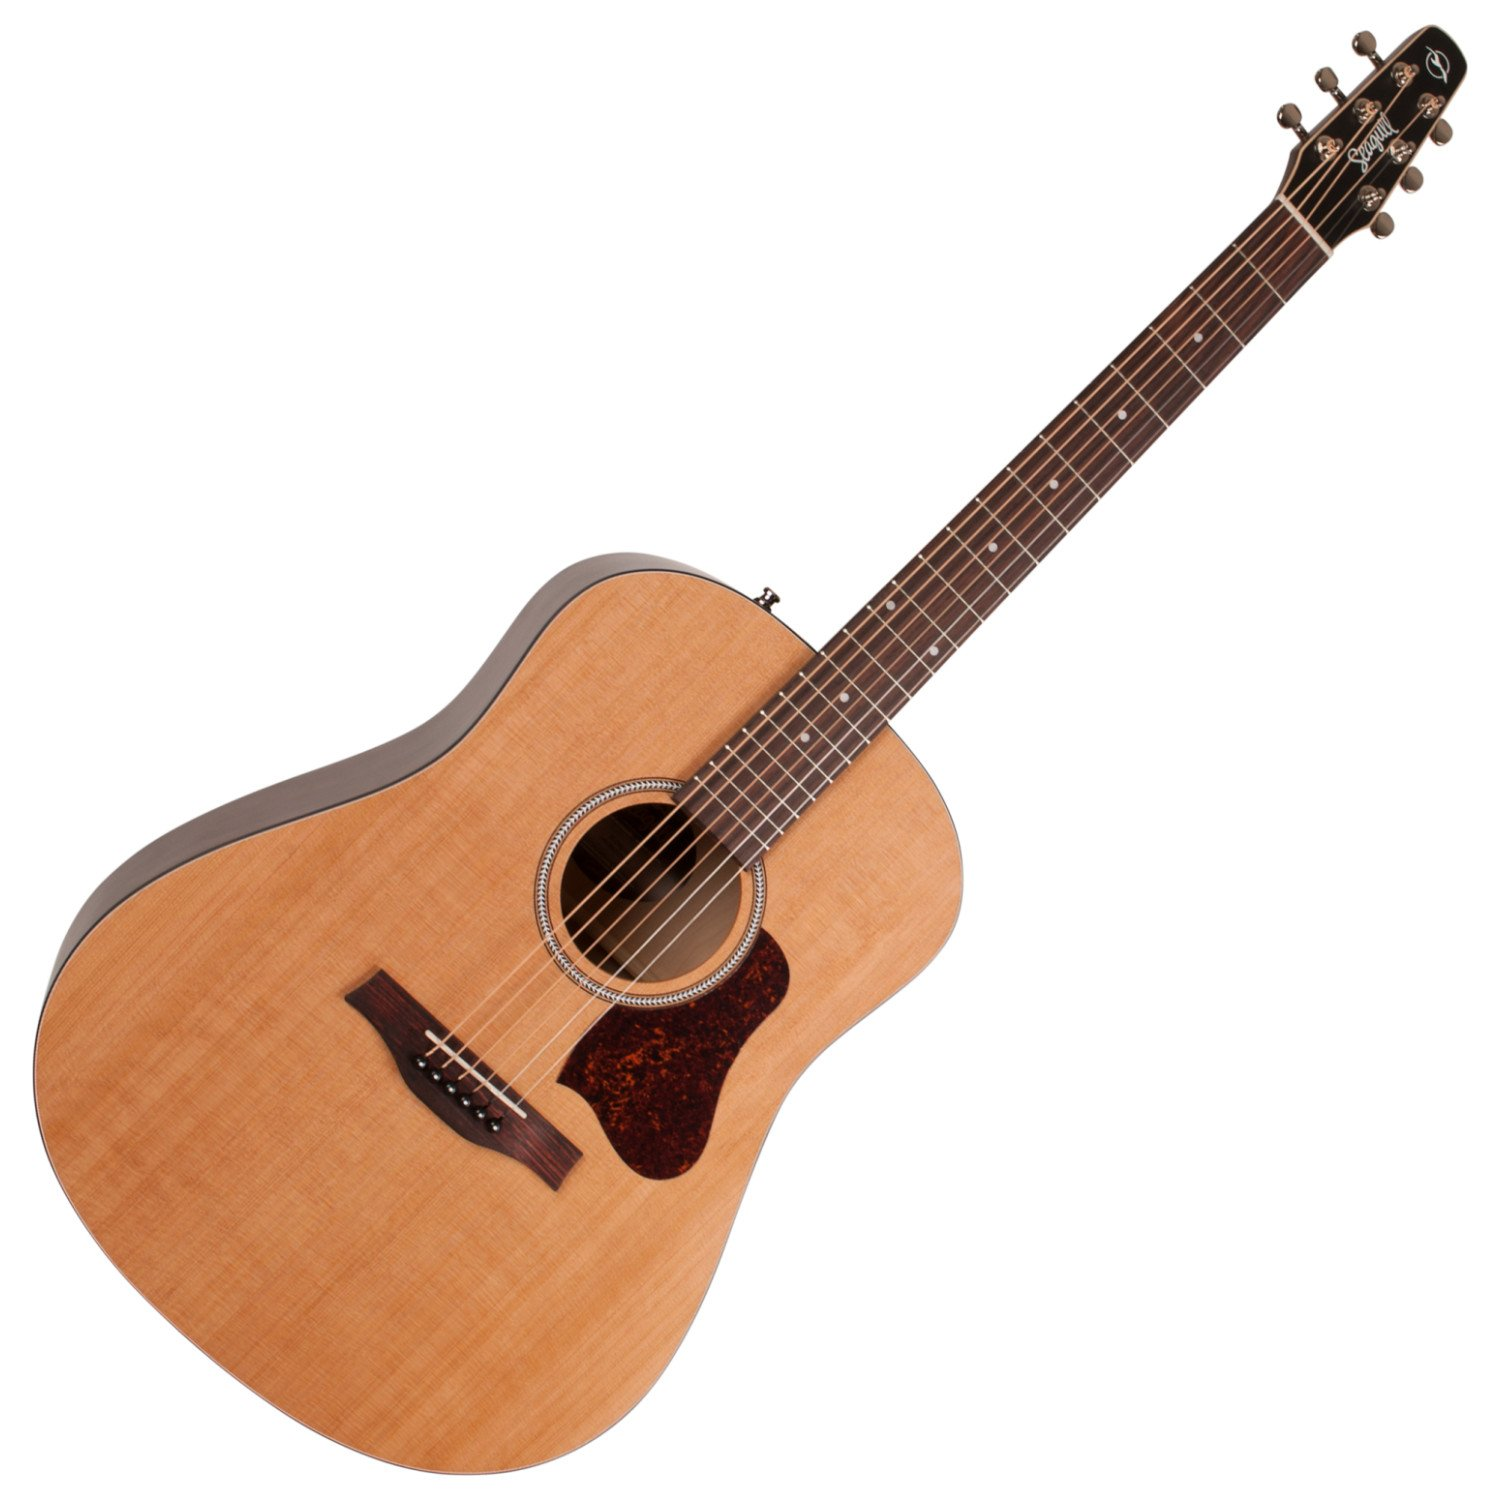 Seagull S6 Original Acoustic Guitar by Seagull